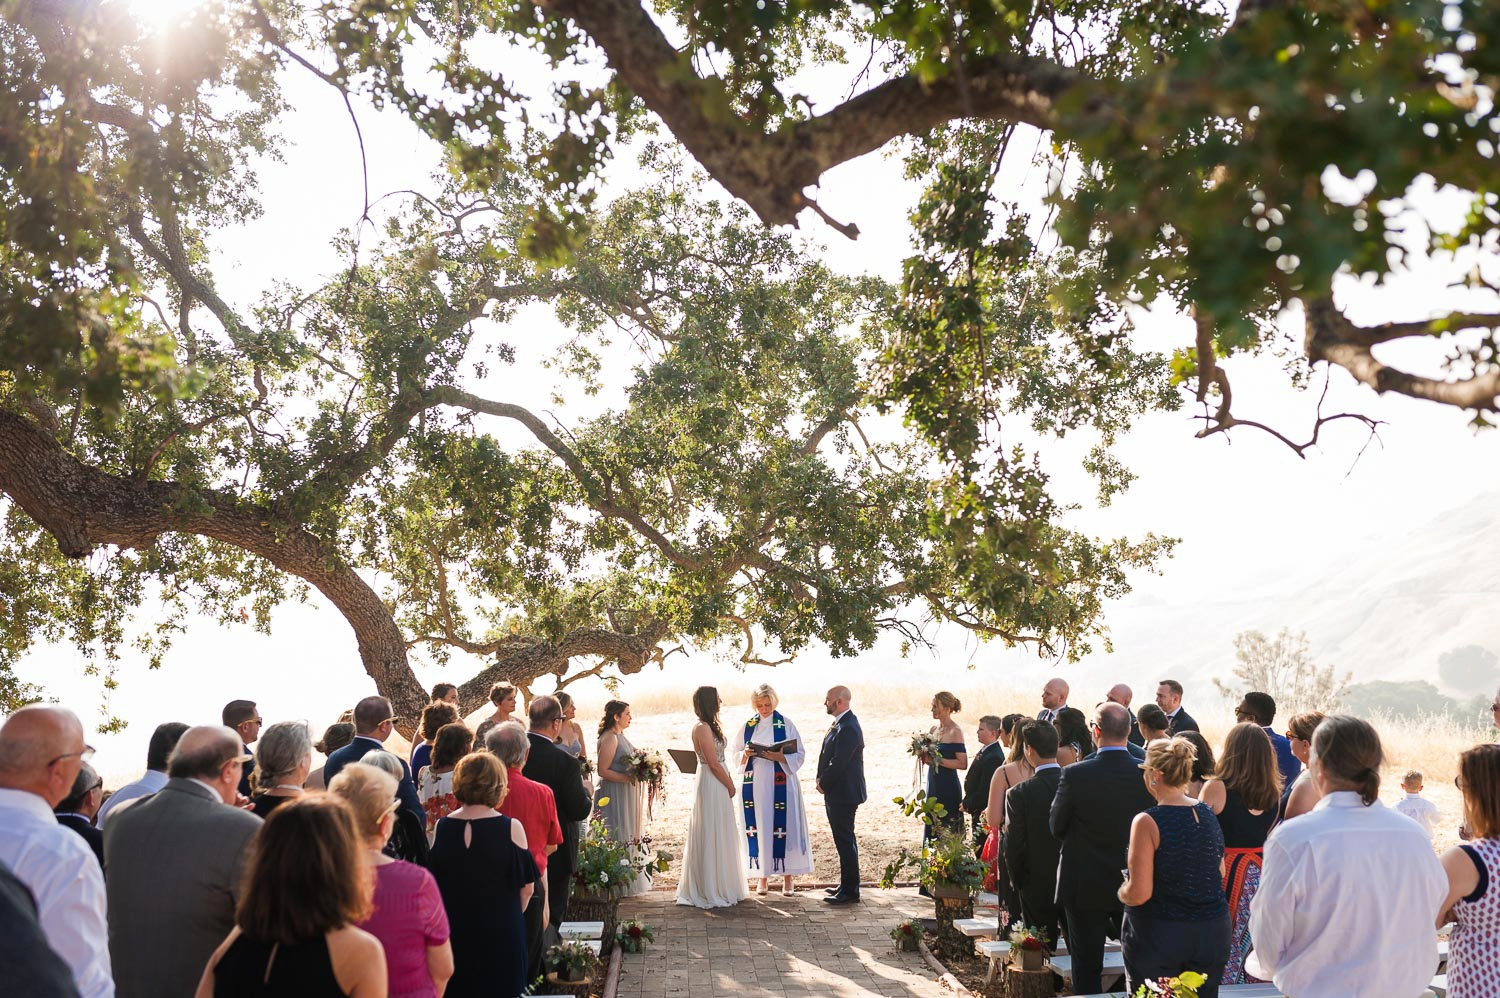 Wedding ceremony under an oak tree at sunset